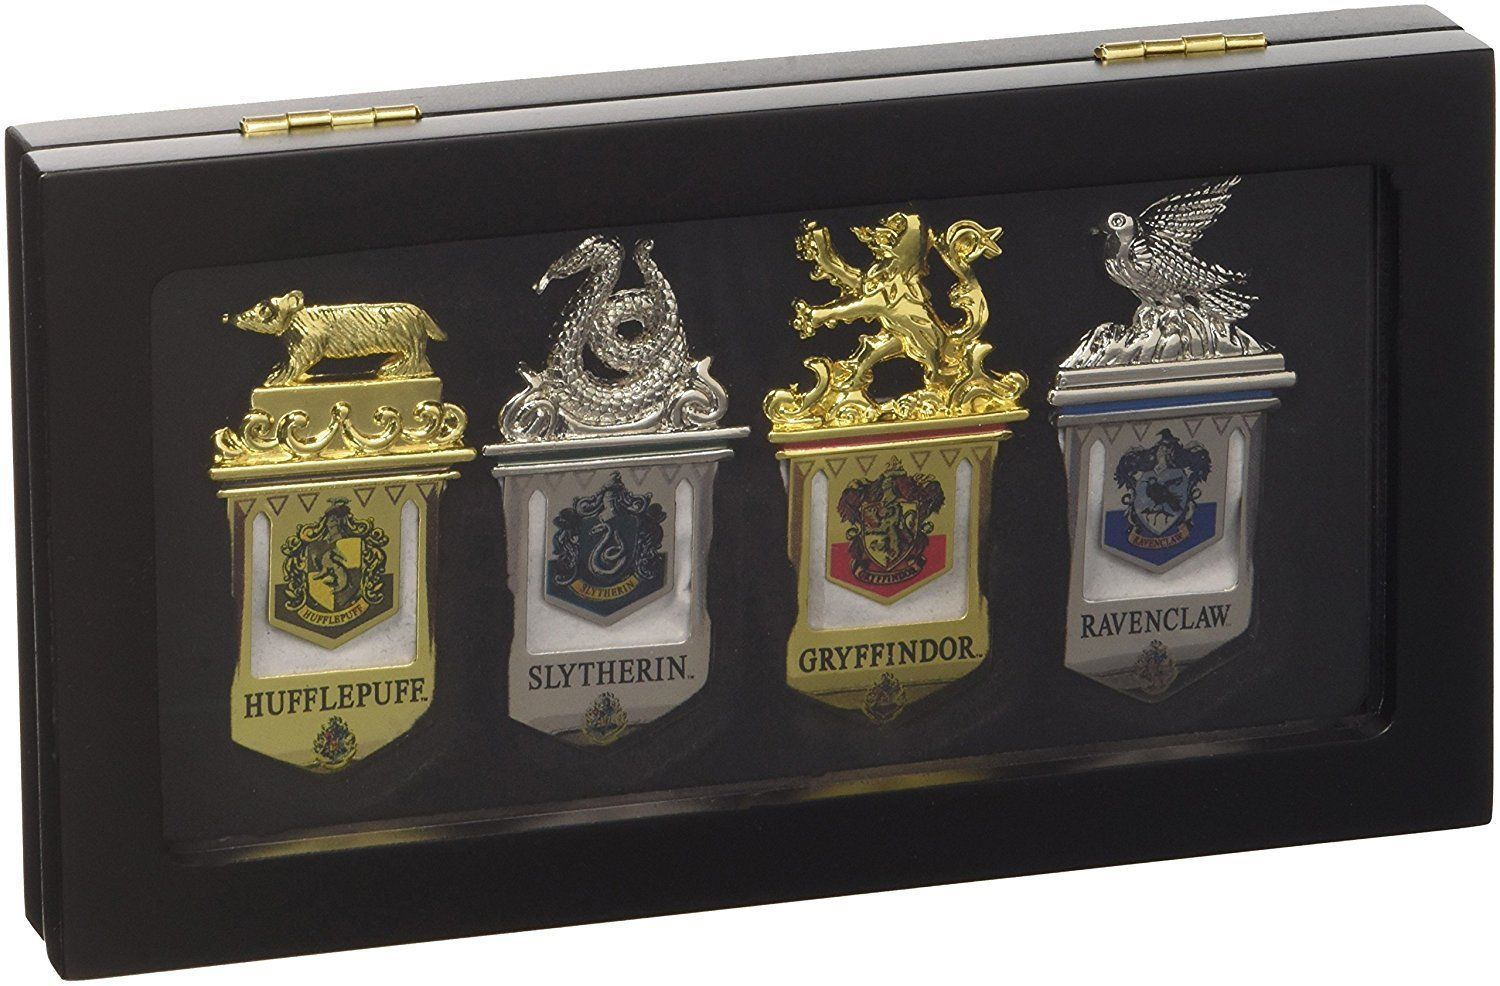 Harry Potter Hogwarts Bookmarks Brand New Officially Authorized Pack of 4